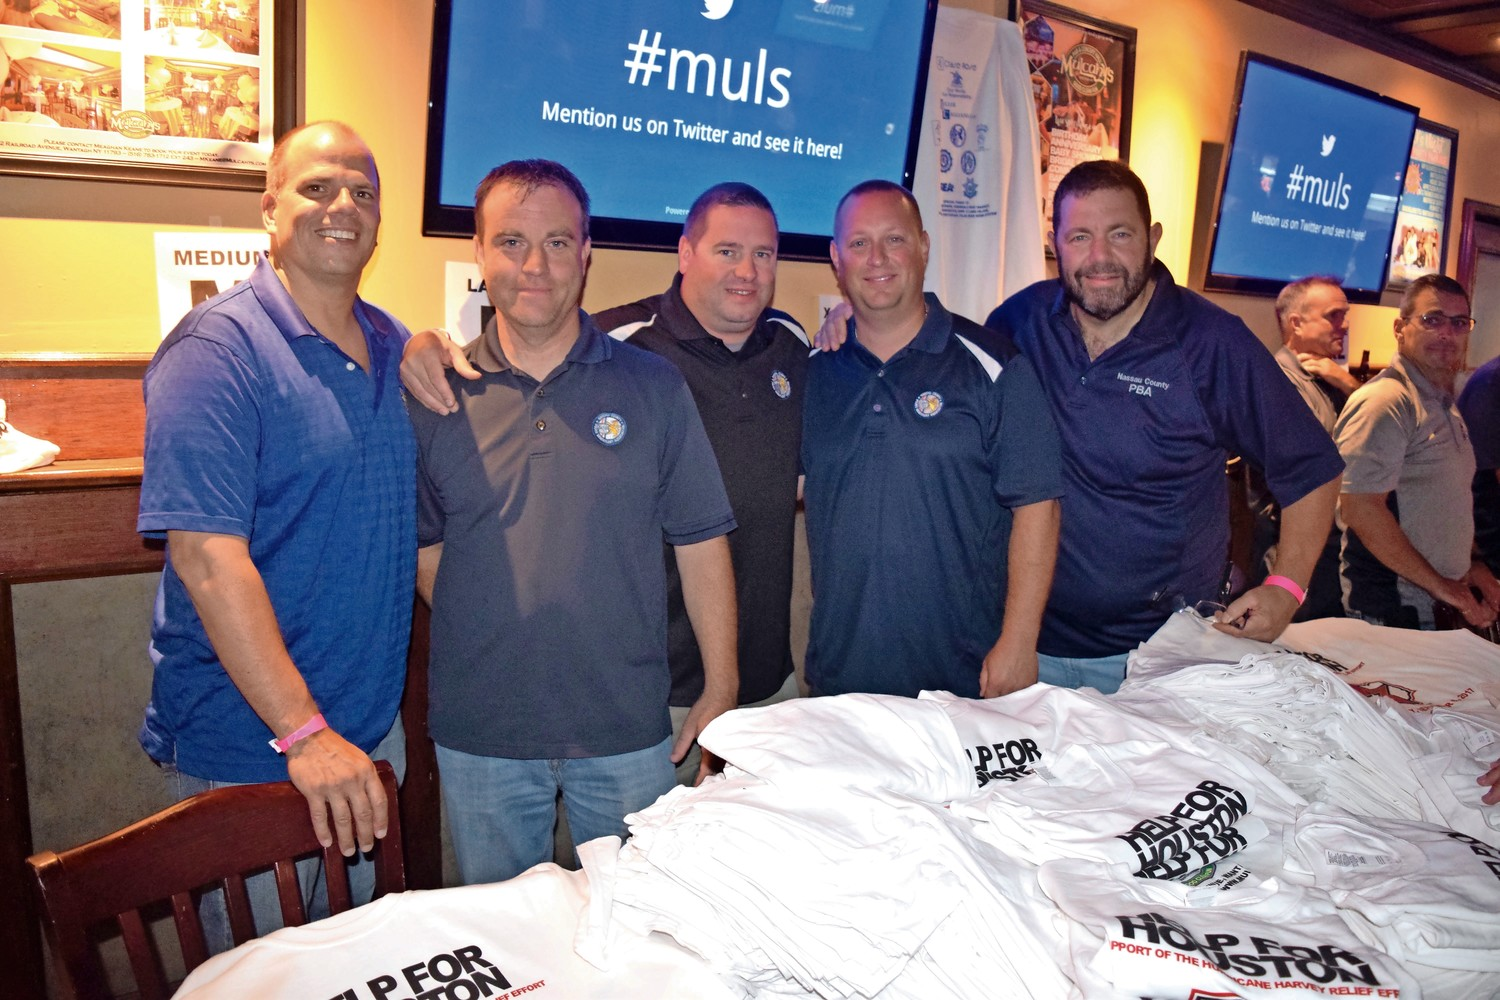 Police Benevolent Association members sold T-shirts and raffles to raise money for Help For Houston at Mulcahy's in Wantagh.